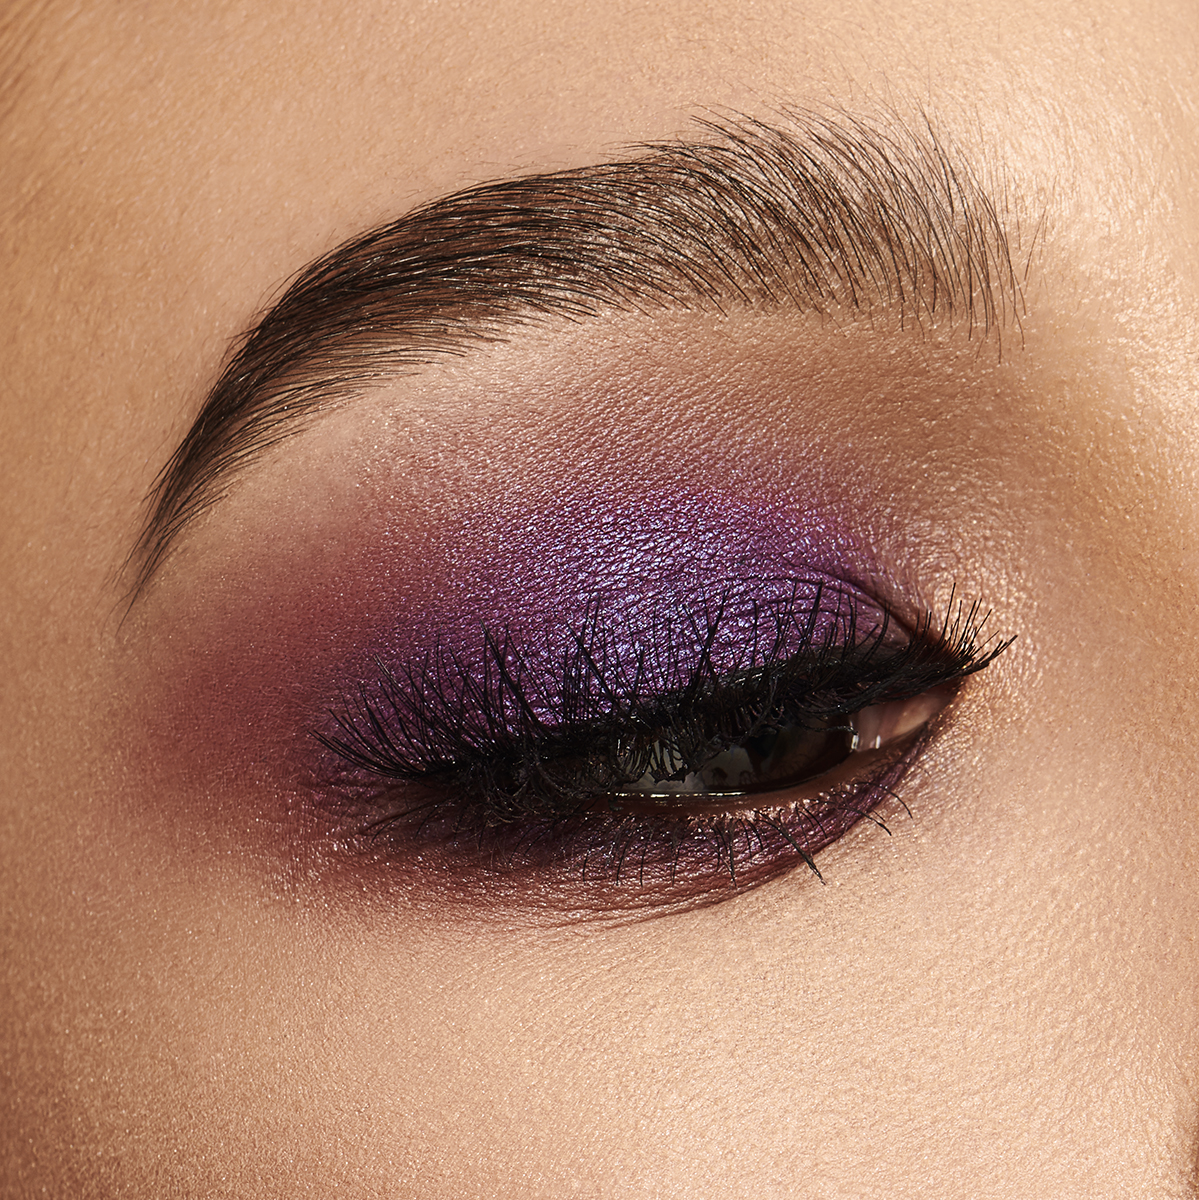 10_Covergirl_Bright_Eyes_04_031_retouched_square web.jpg